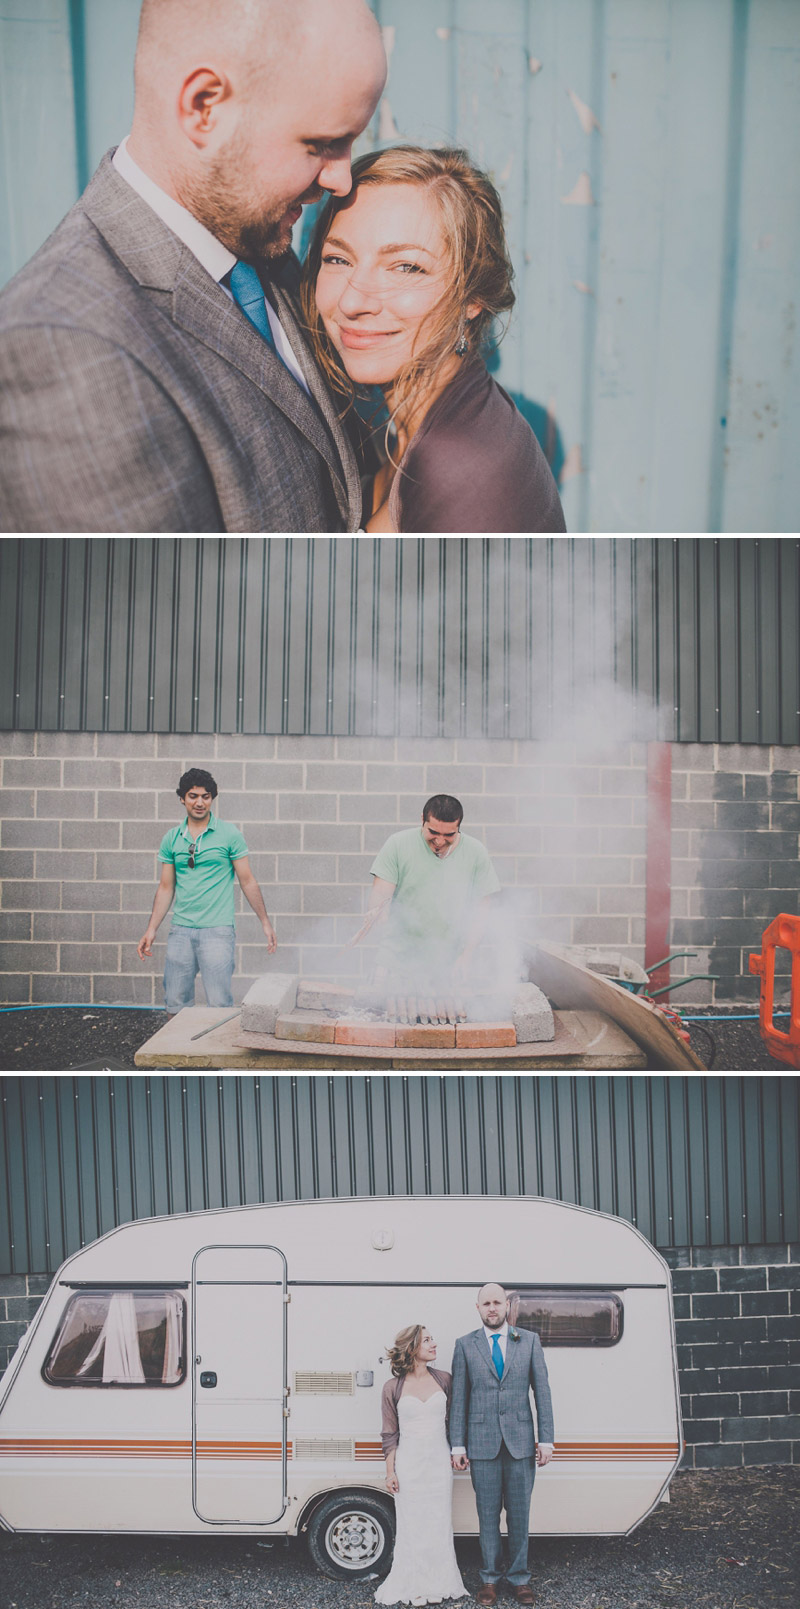 James-Melia-Portraits-BBQ